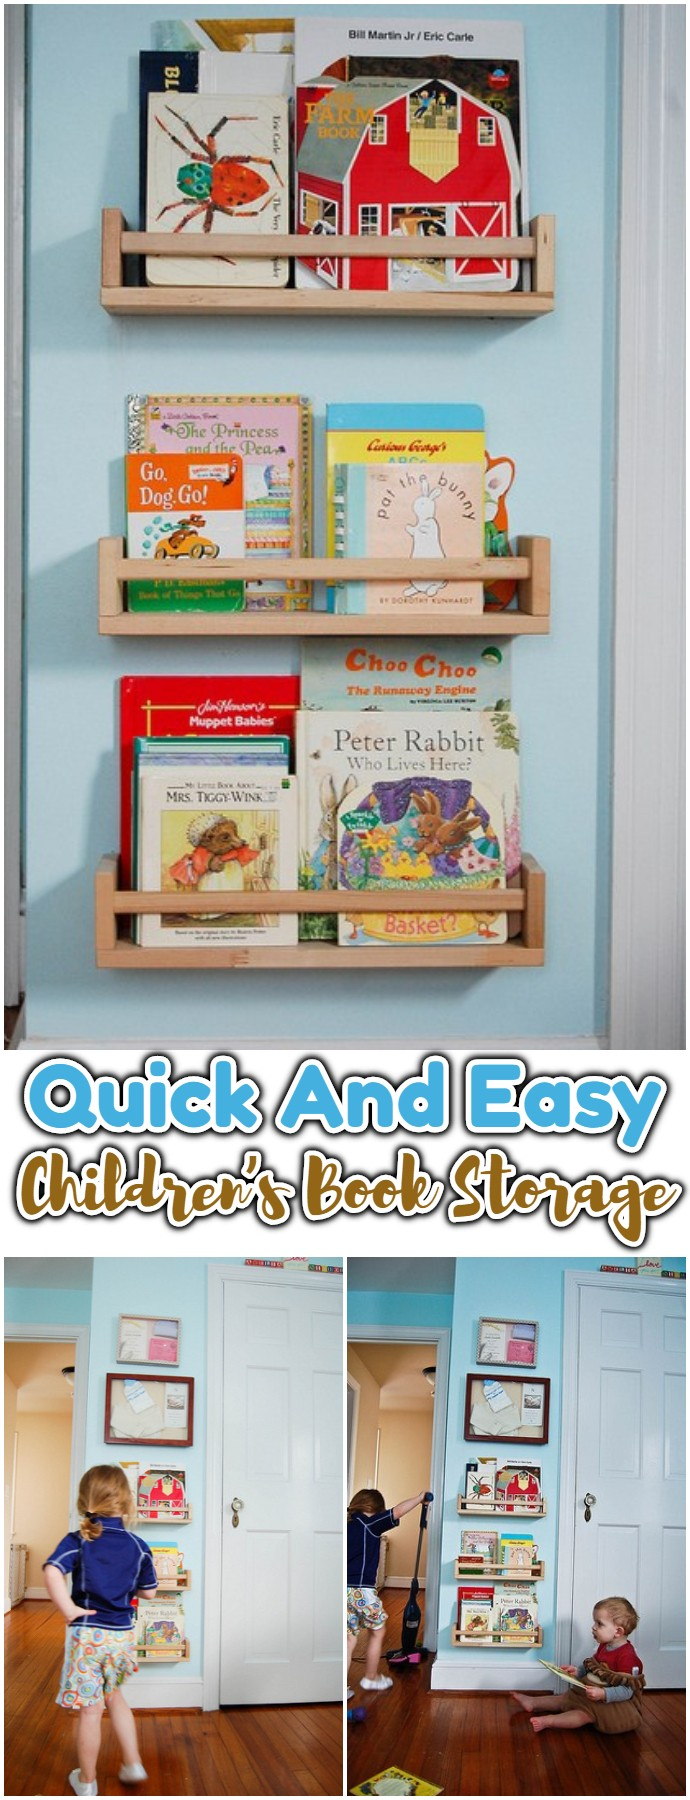 Quick And Easy Children's Book Storage